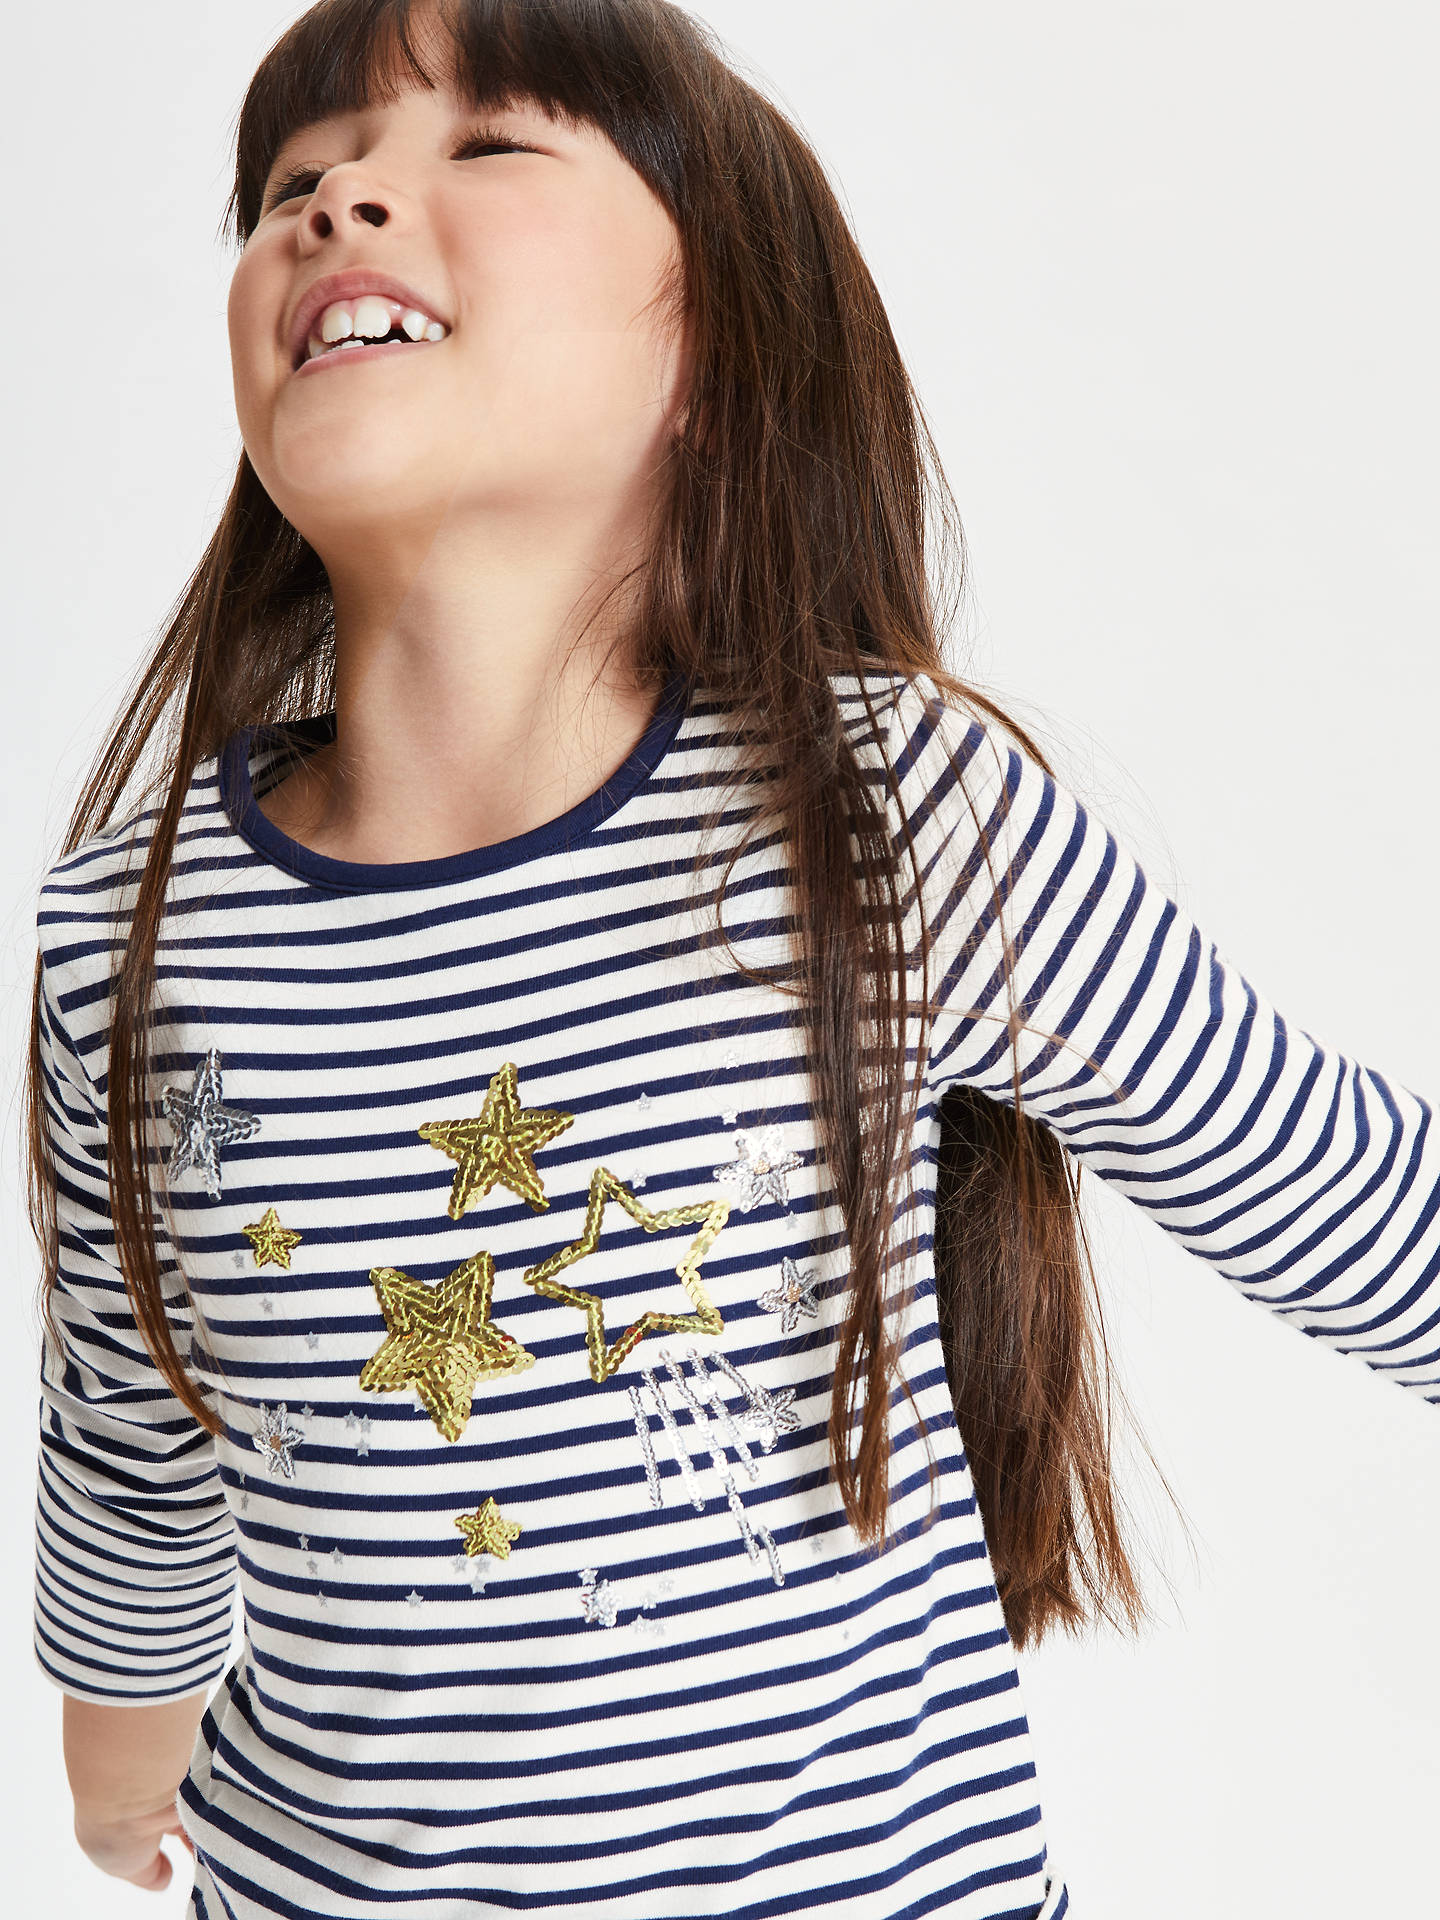 Buy John Lewis & Partners Girls' Star Sequin T-Shirt, Navy, 2 years Online at johnlewis.com